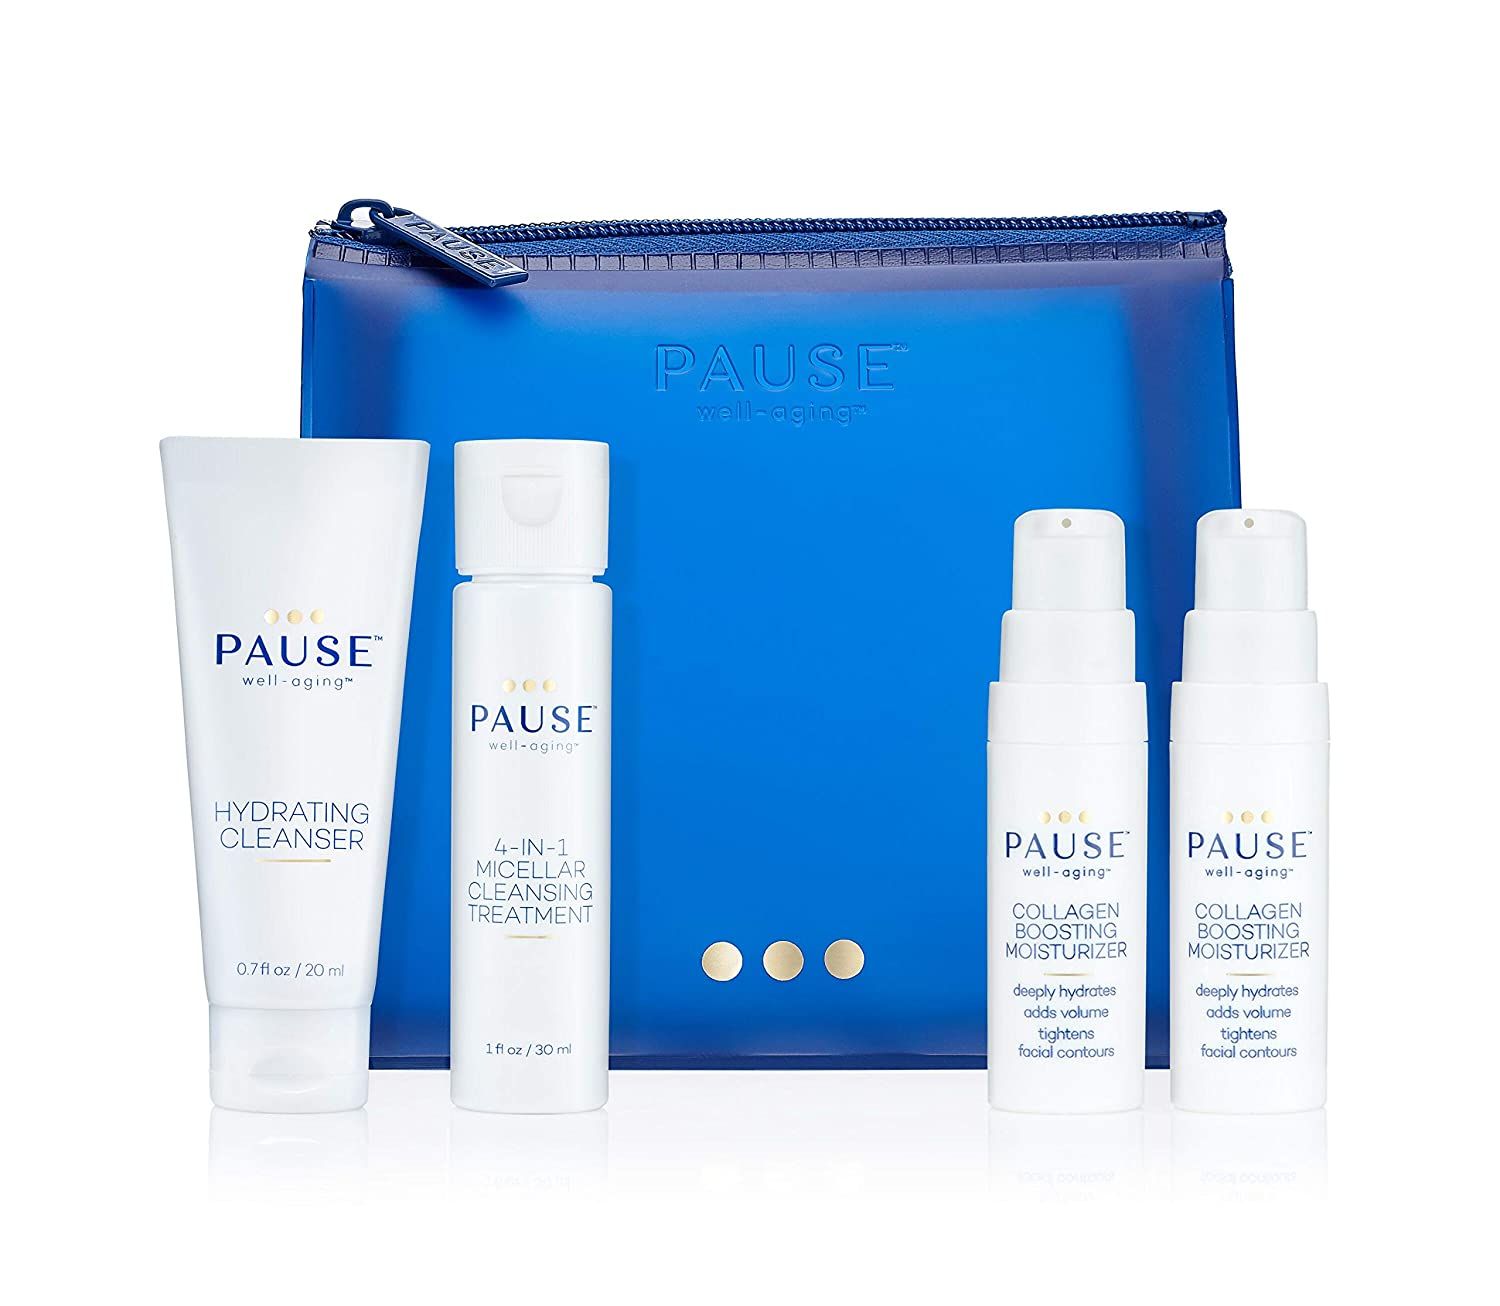 Pause Discovery Kit